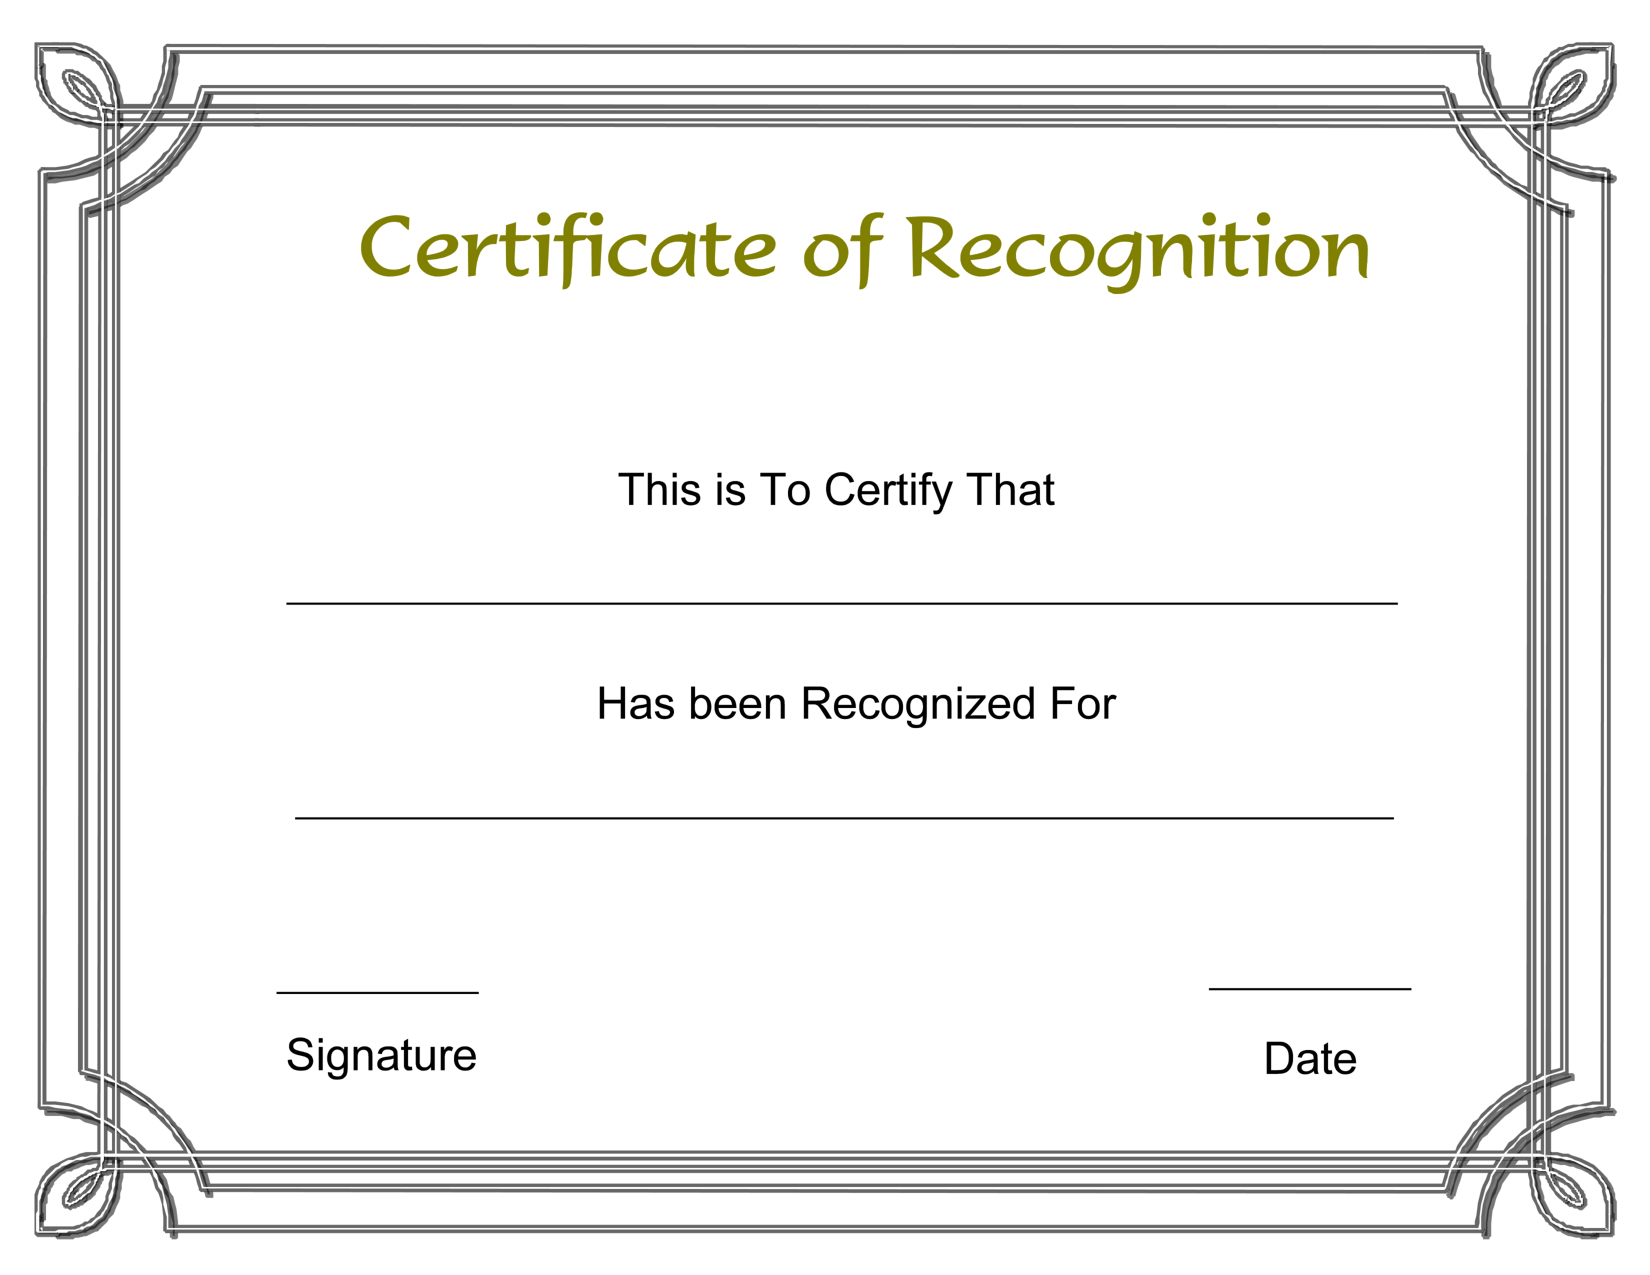 Template Free Award Certificate Templates And Employee inside Printable Certificate Of Recognition Templates Free